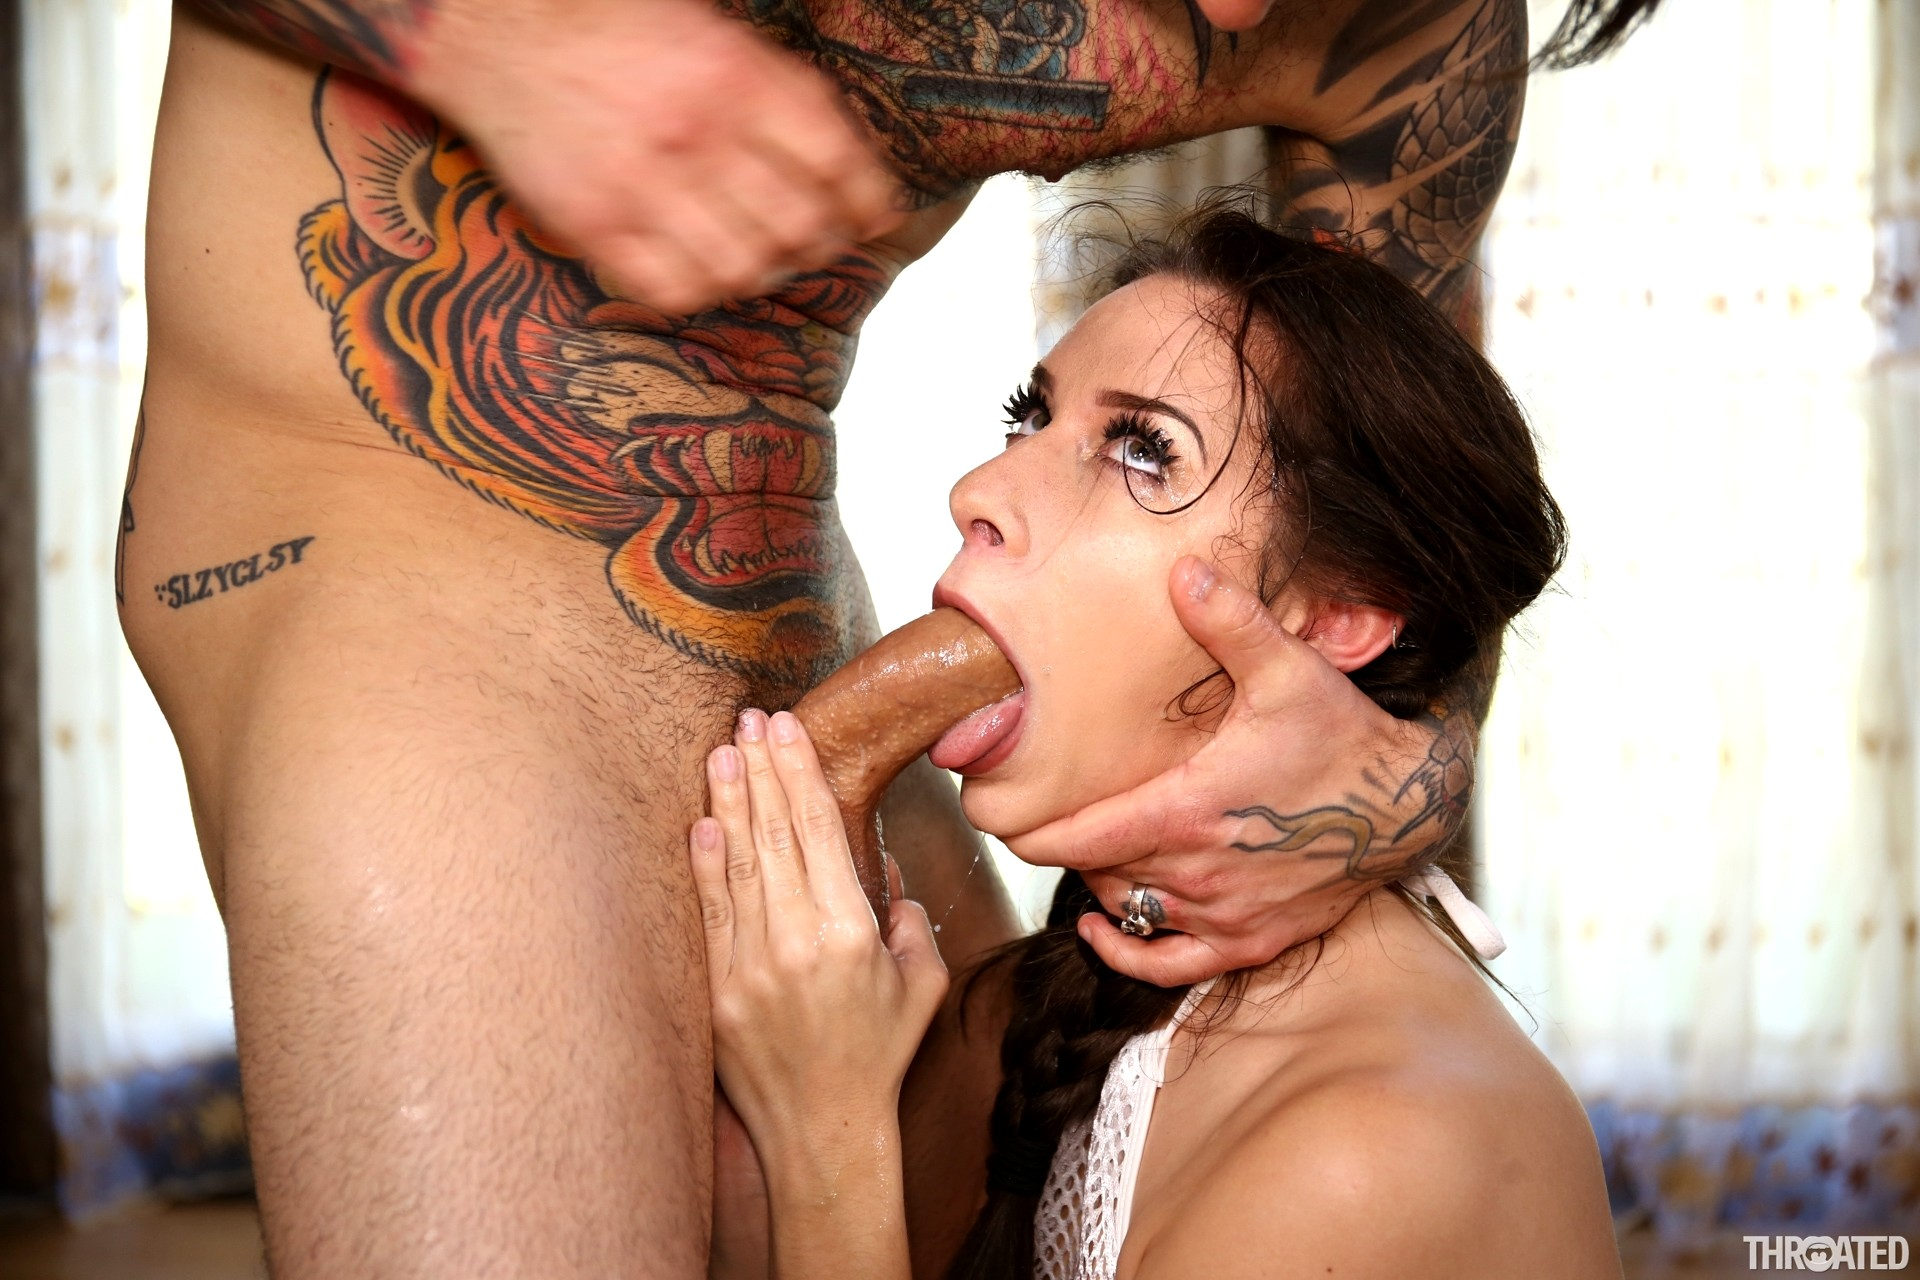 image Throated cassidy klein is back for more gagging